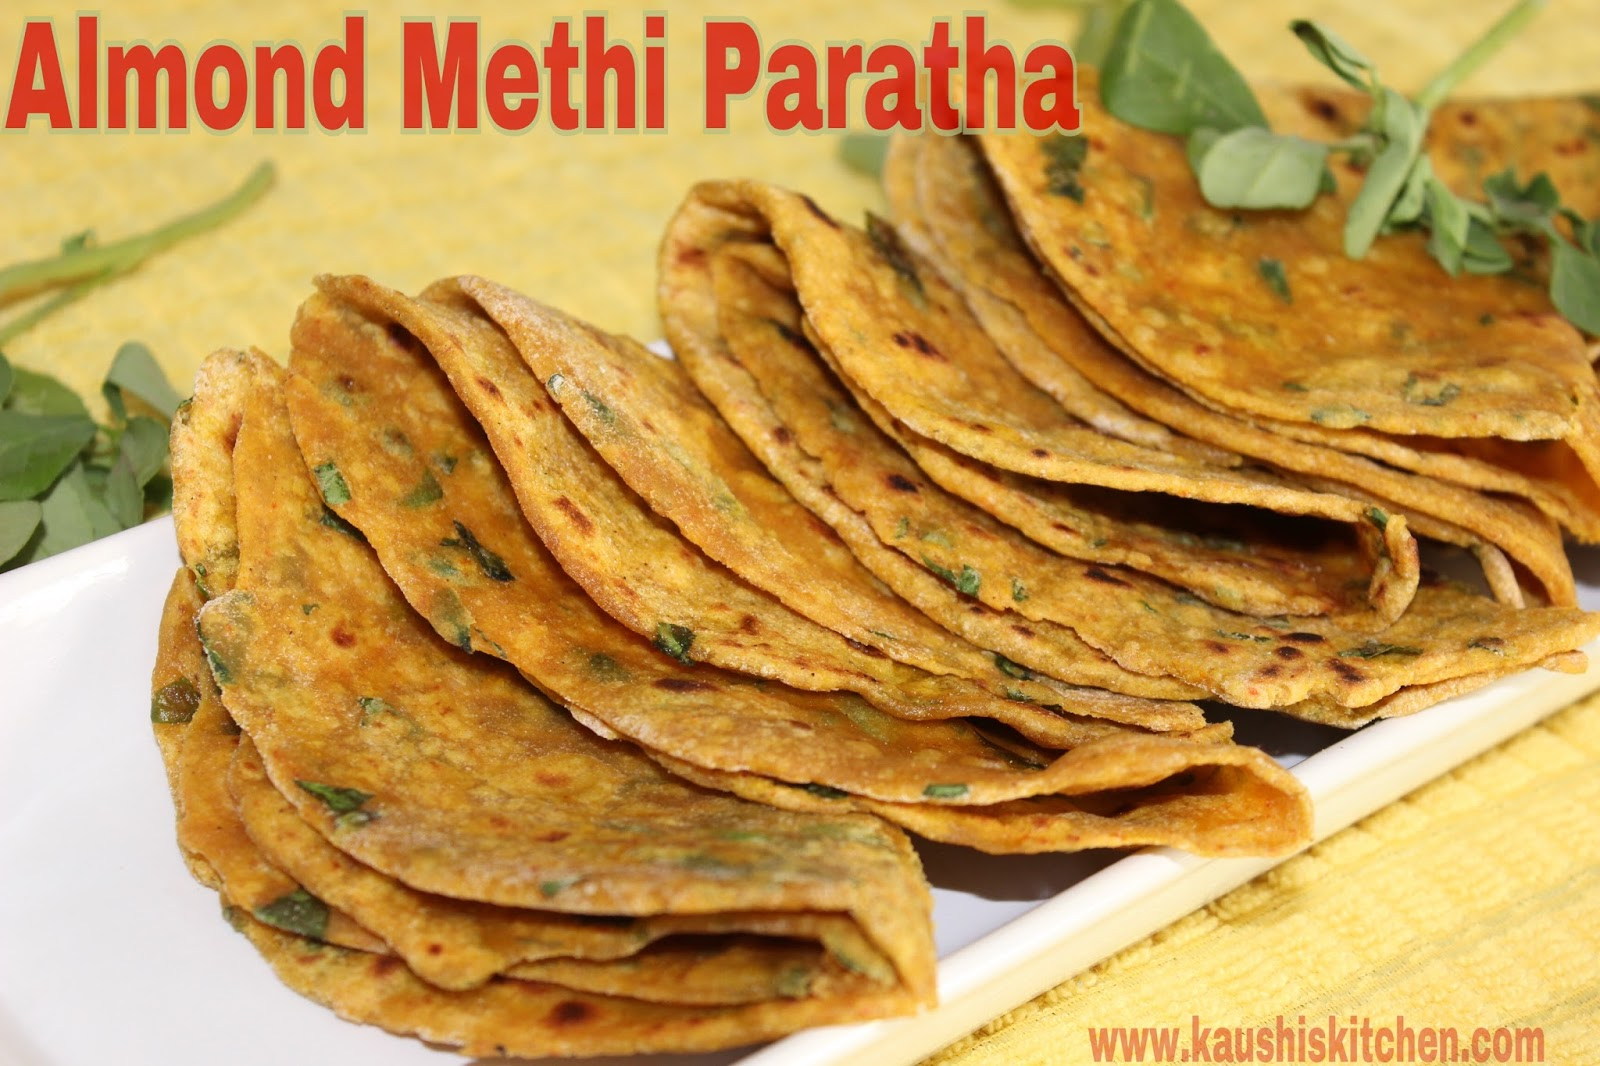 KAUSHI'S KITCHEN: ALMOND METHI PARATHA | BADAM METHI ROTI